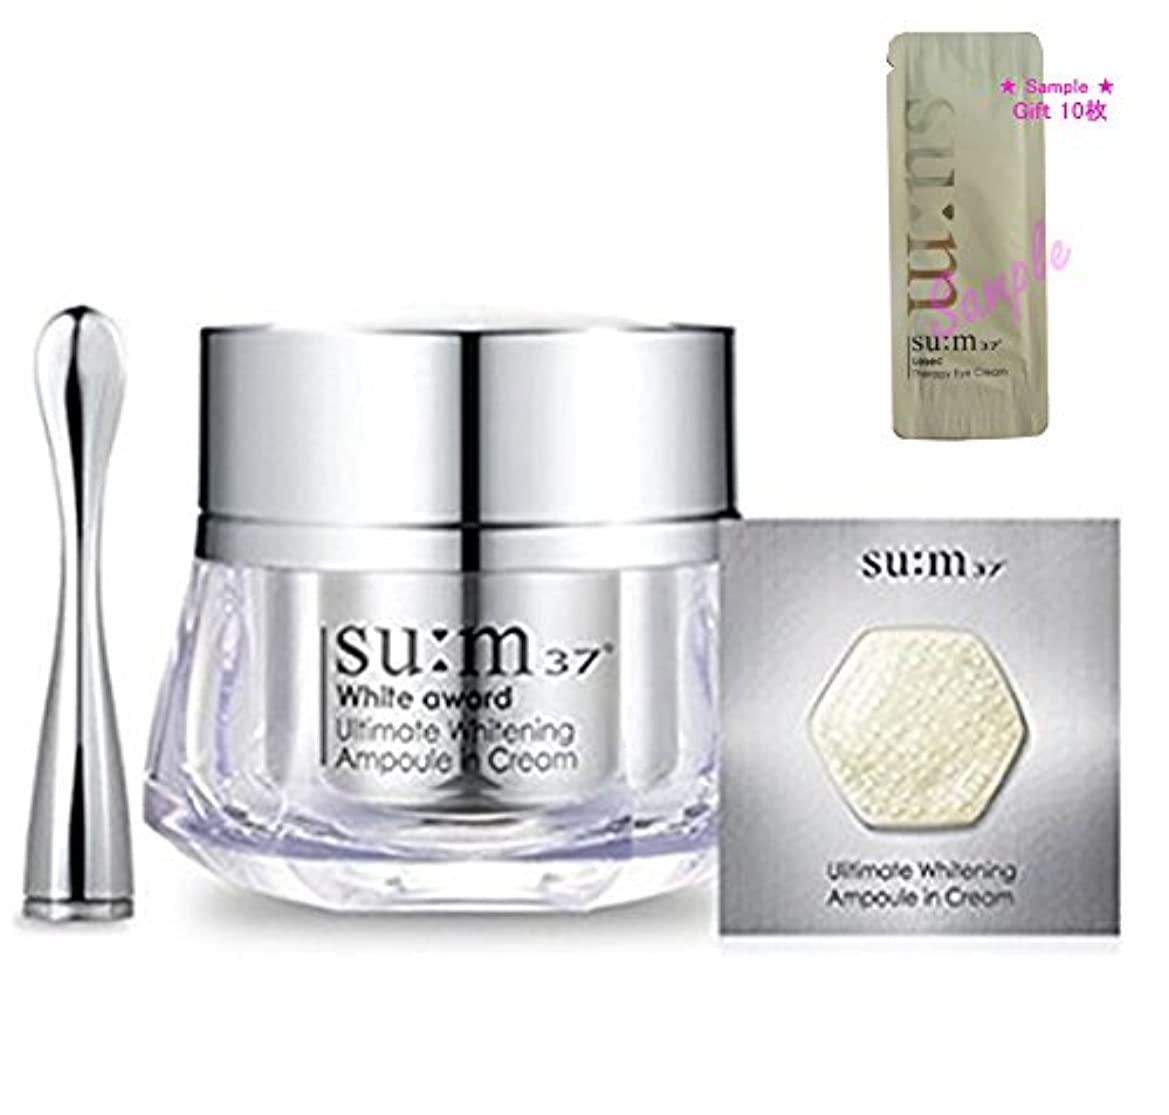 [su:m37/スム37°] SUM37 WHITE AWARD ULTIMATE WHITENING AMPOULE IN CREAM(並行輸入品)